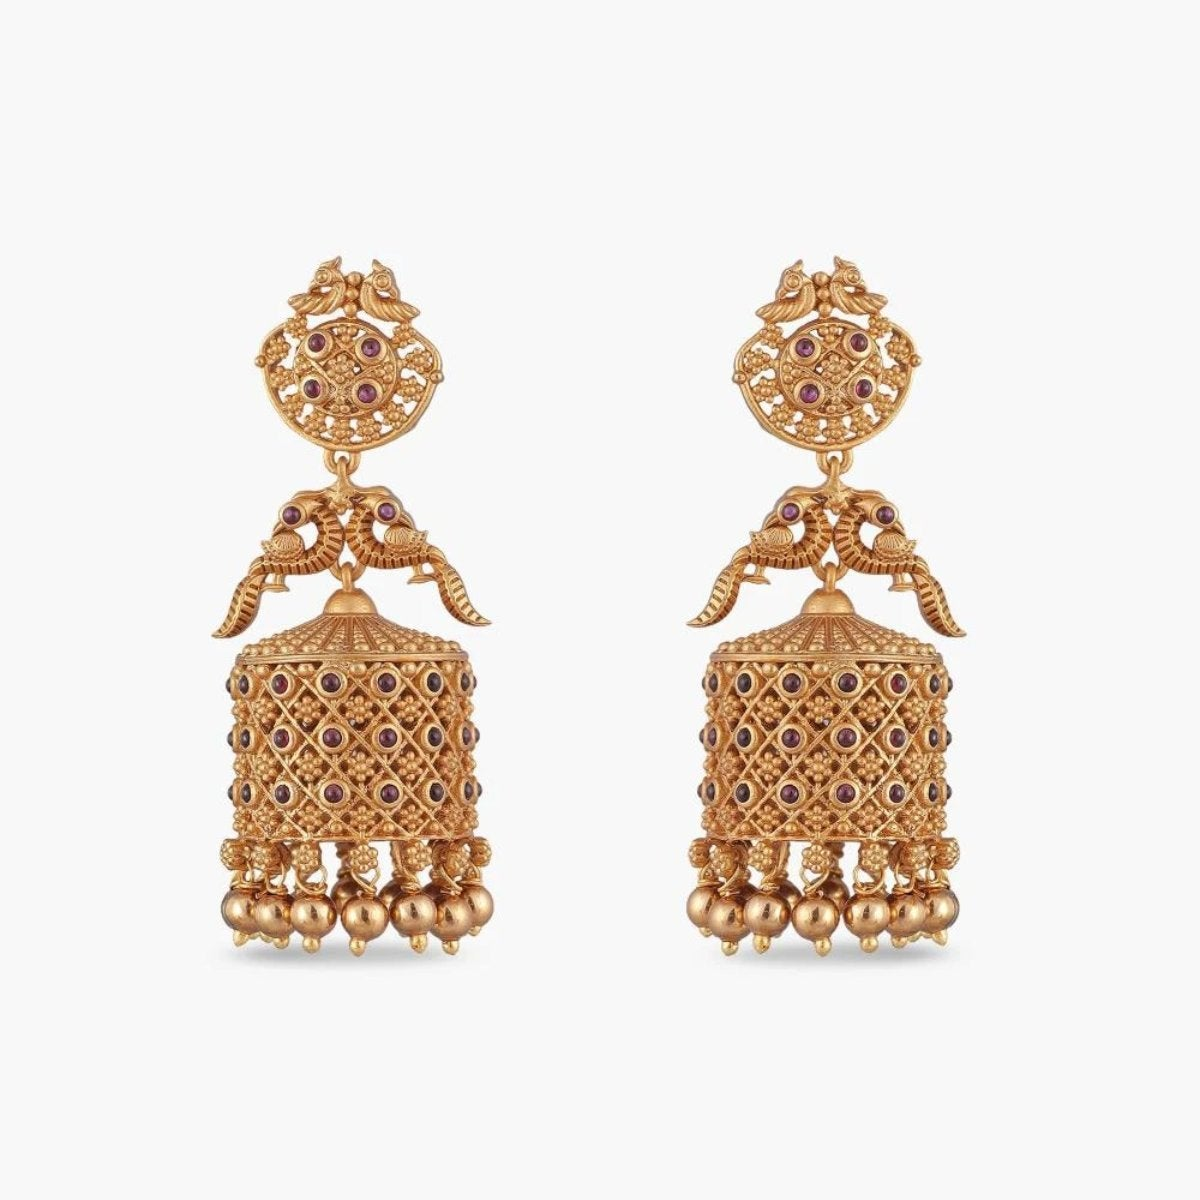 Dhvani Antique Jhumka Earrings